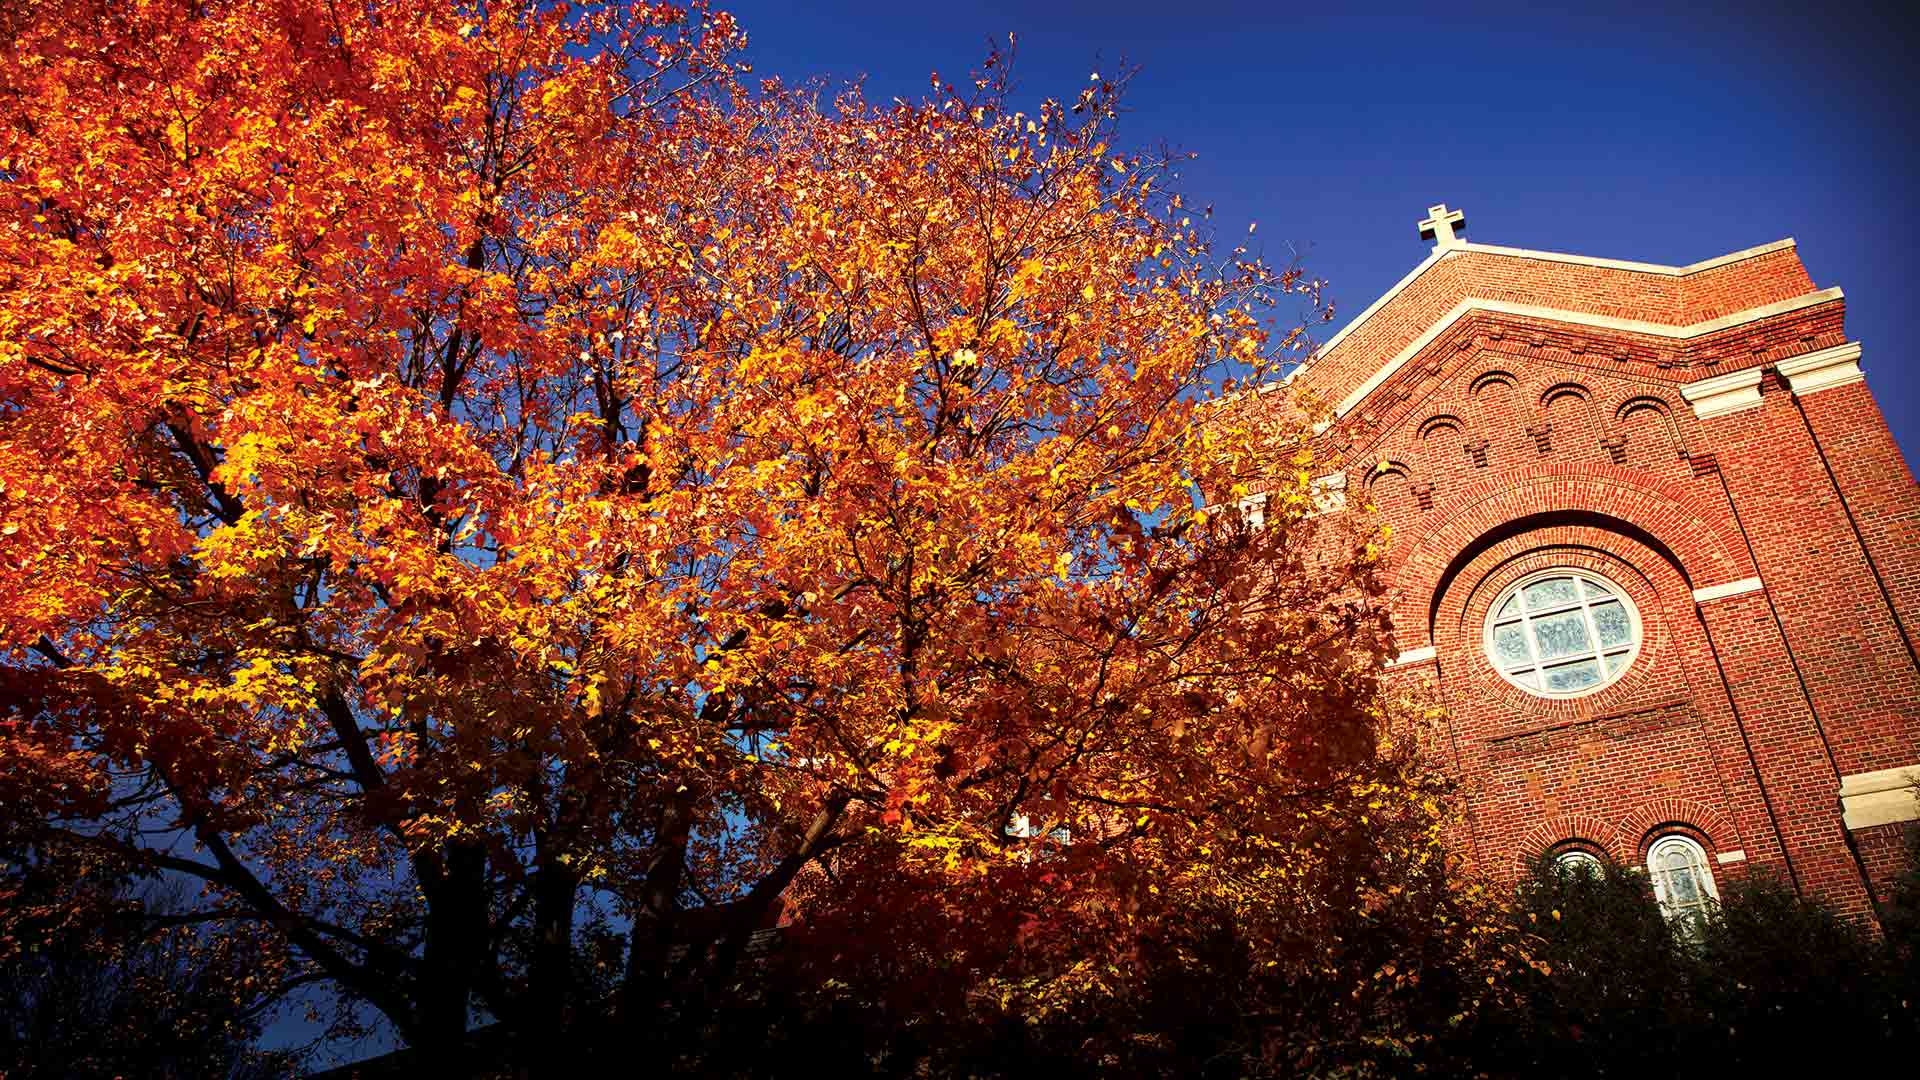 The Chapel of St. Thomas Aquinas in autumn surrounded by red and orange trees.